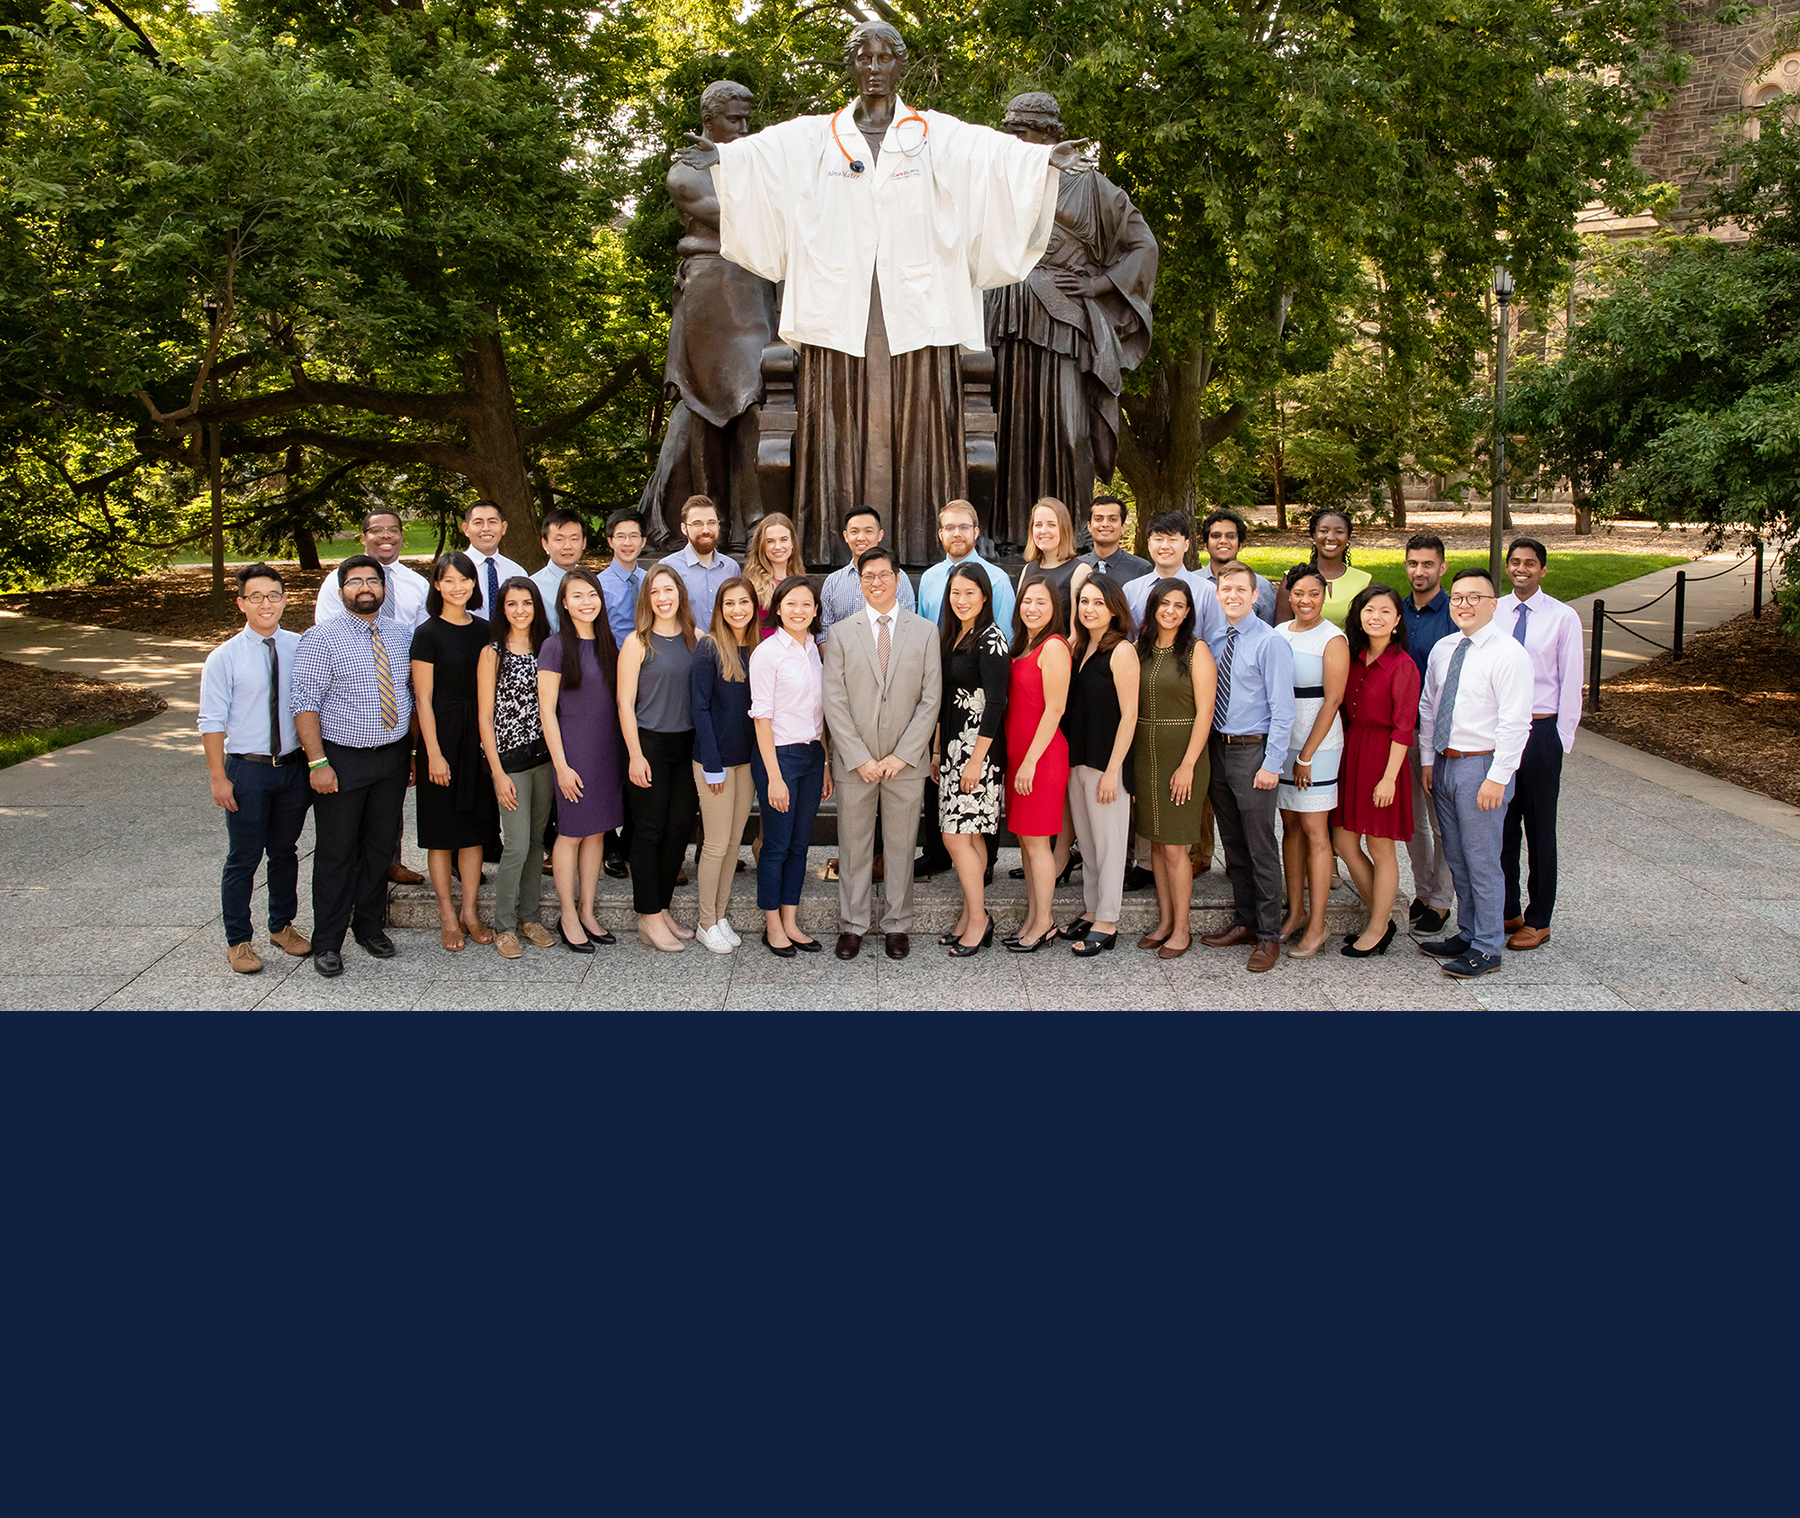 The first class of students at the Carle Illinois College of Medicine in 2018 joined Dr. King Li, front center, the dean of Carle Illinois. Photo by L. Brian Stauffer